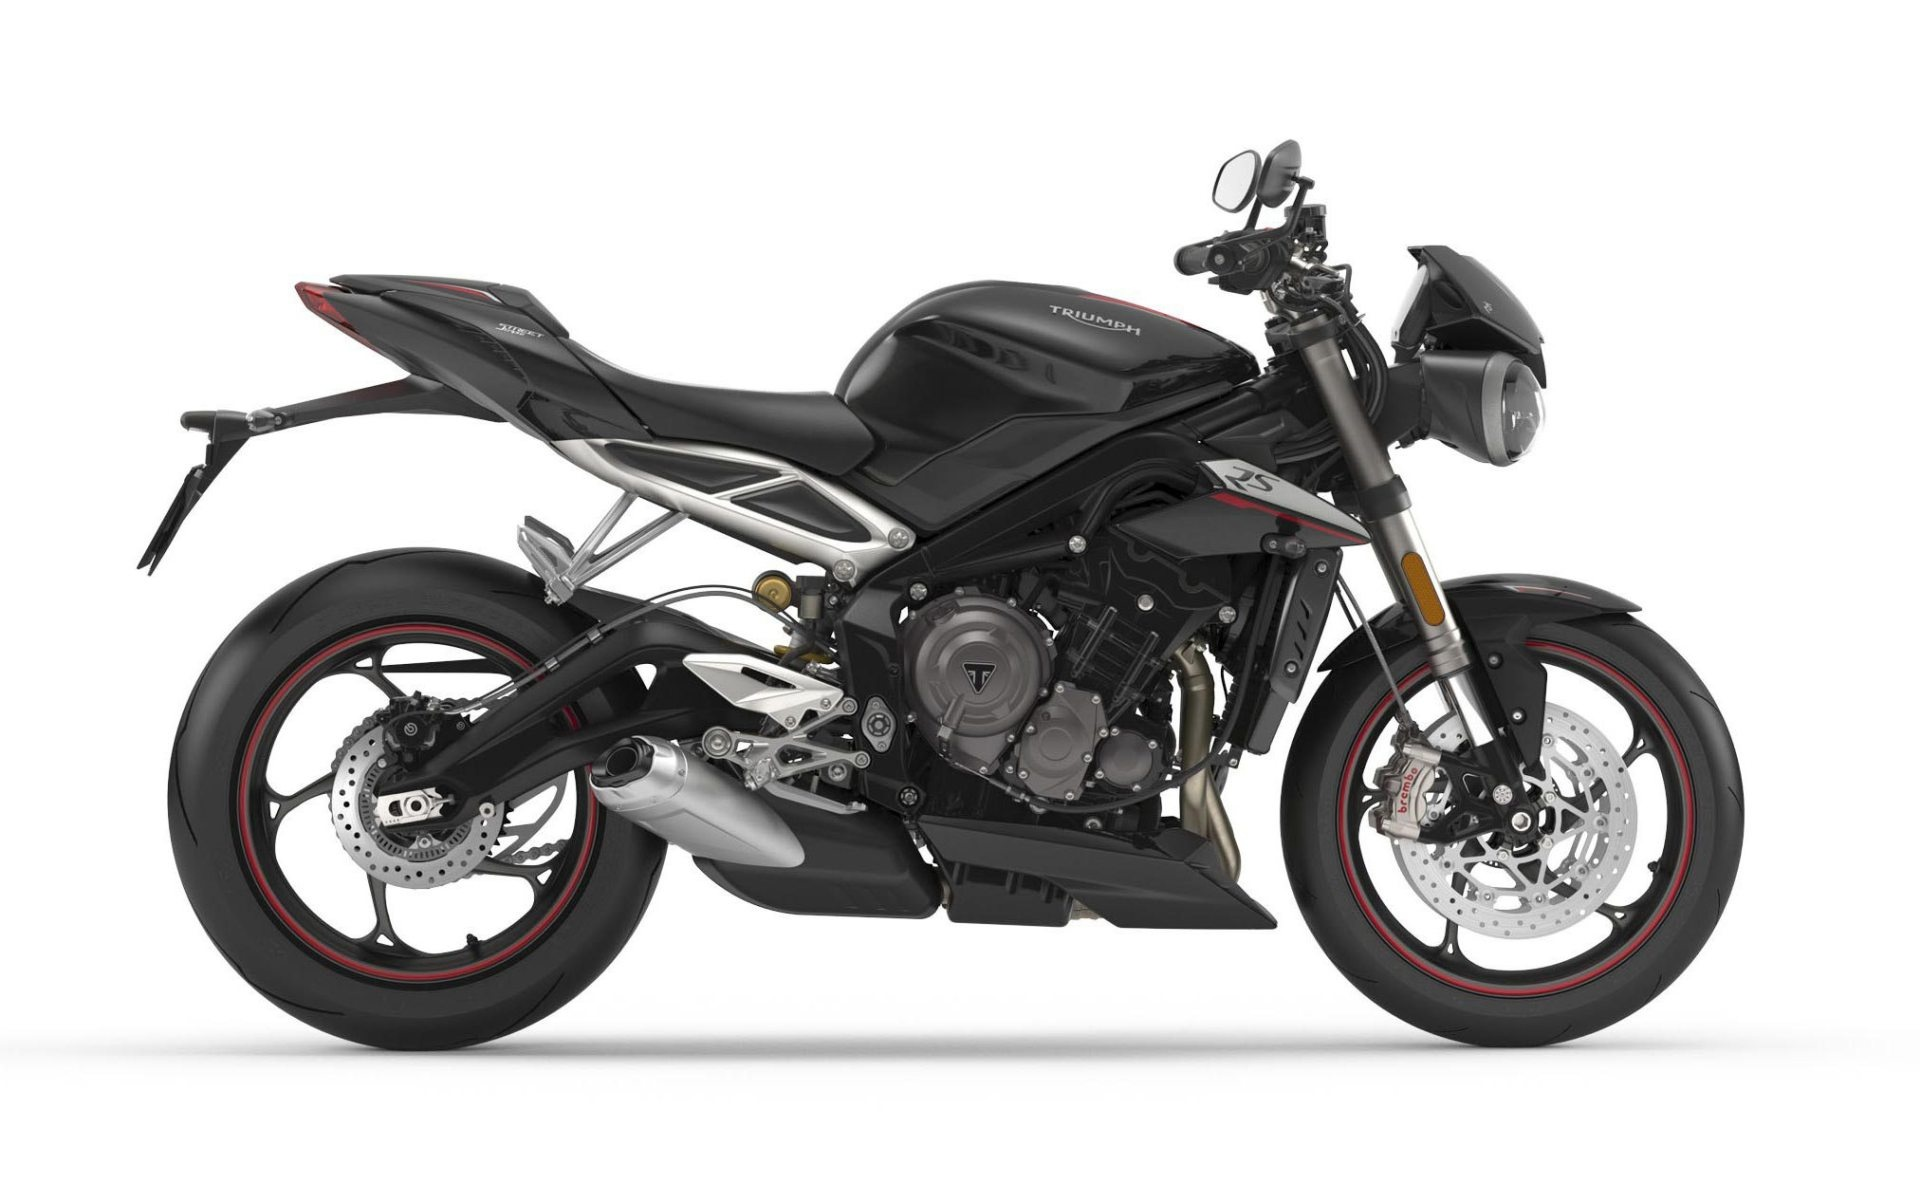 New Triumph Street Triple Debuts with 765cc Engine